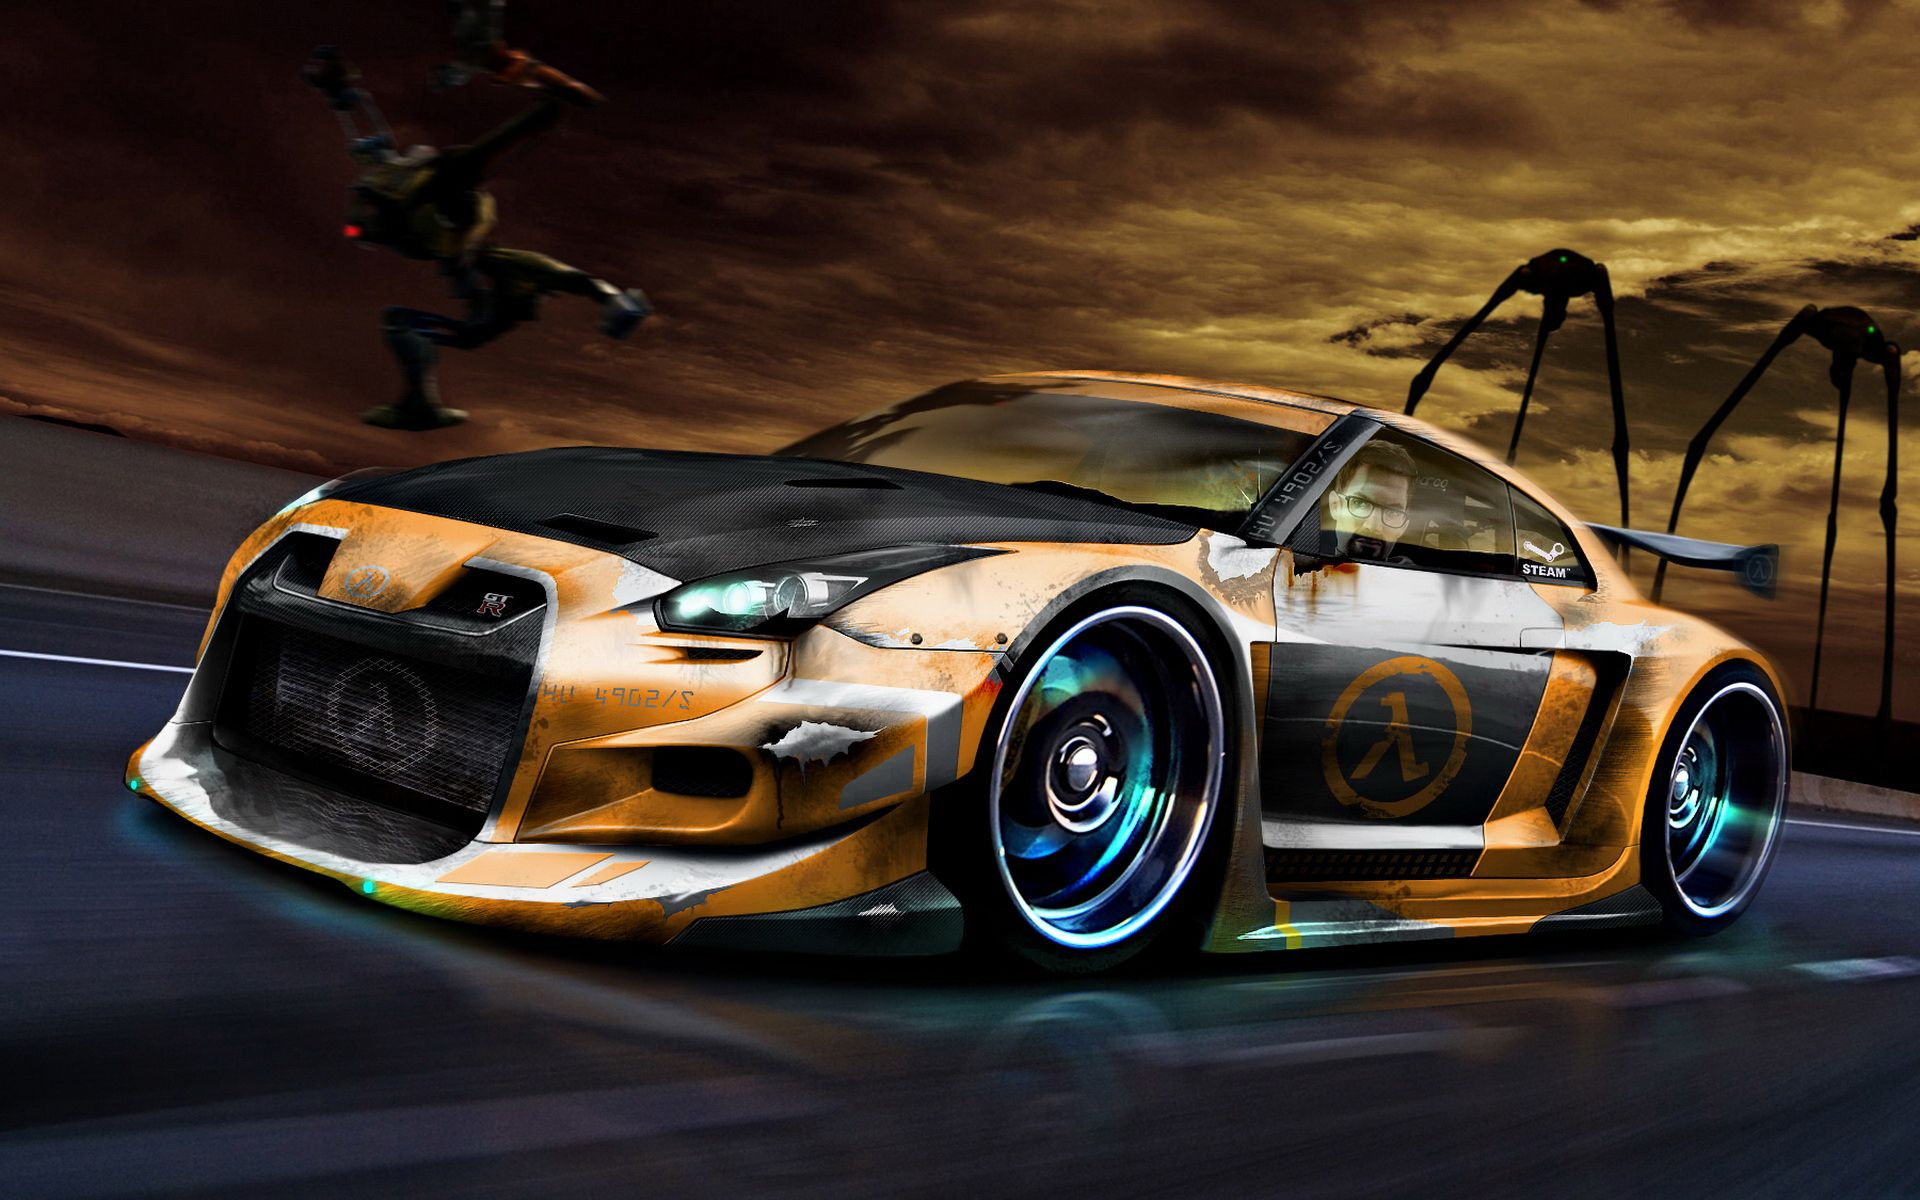 Street Racing Car Pics Cool Sports Car Wallpaper Auto Desktop Background